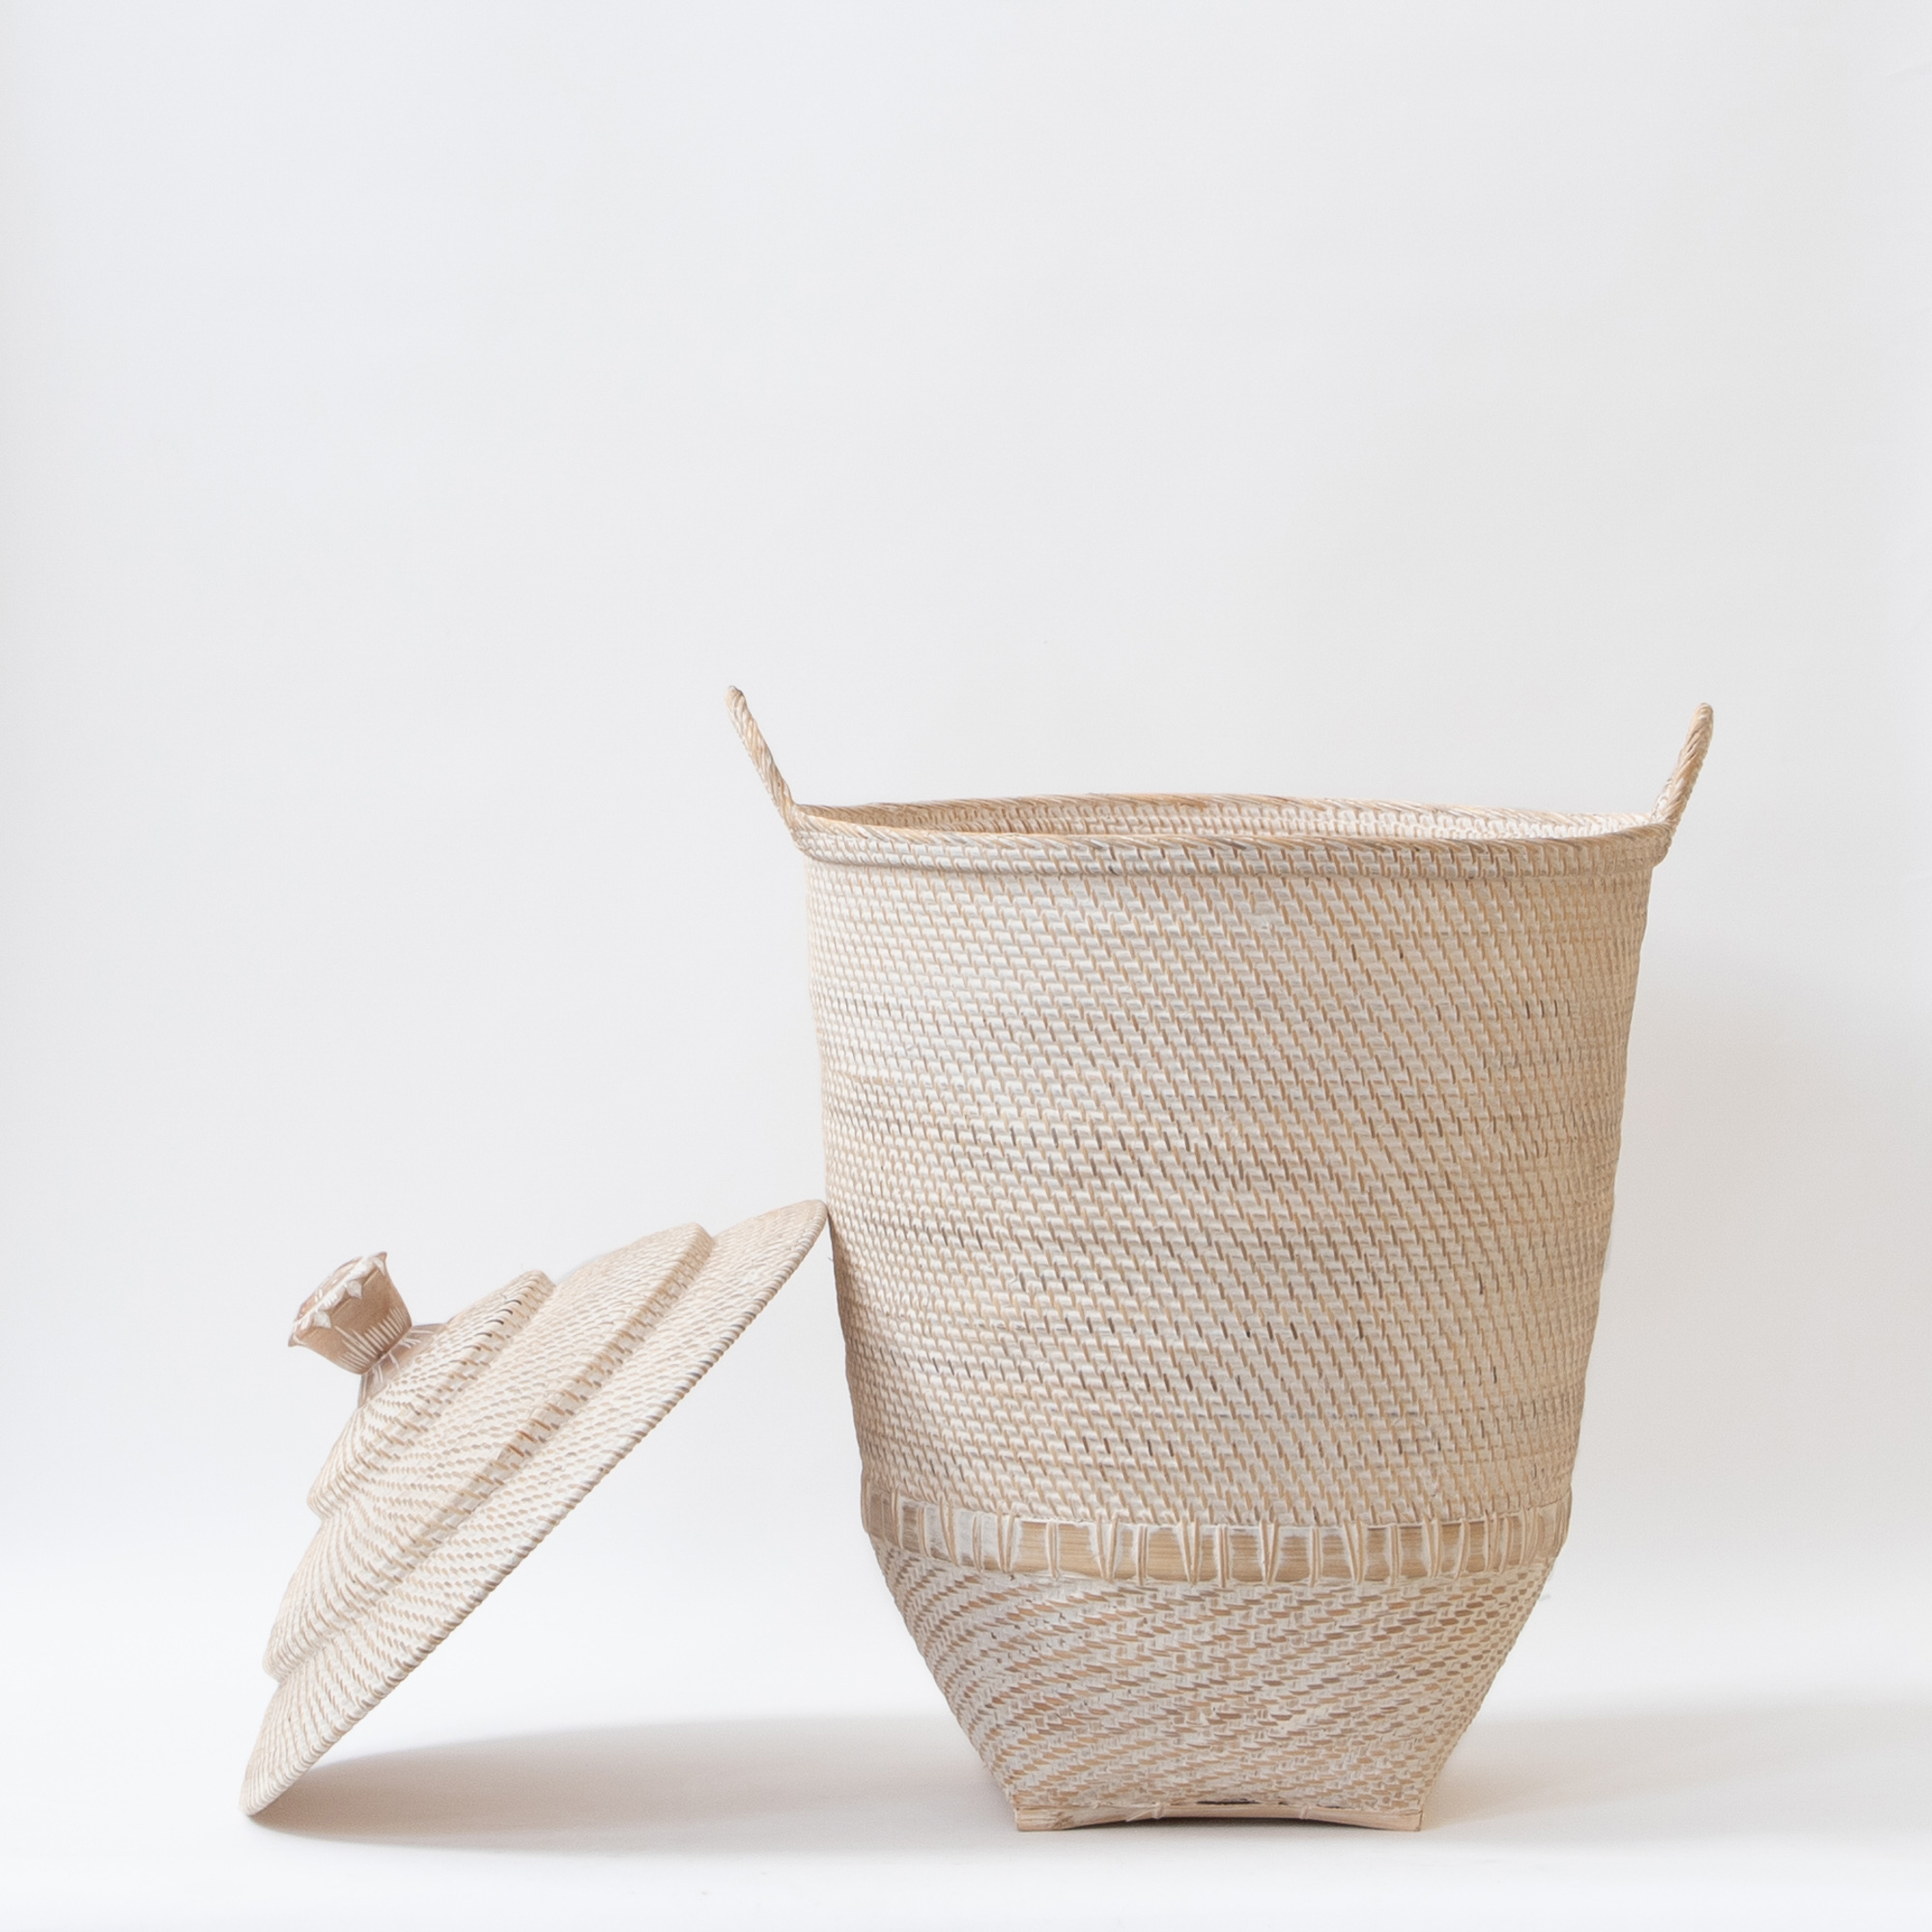 Hata Handwoven Basket With Lid and Side Swing Handles